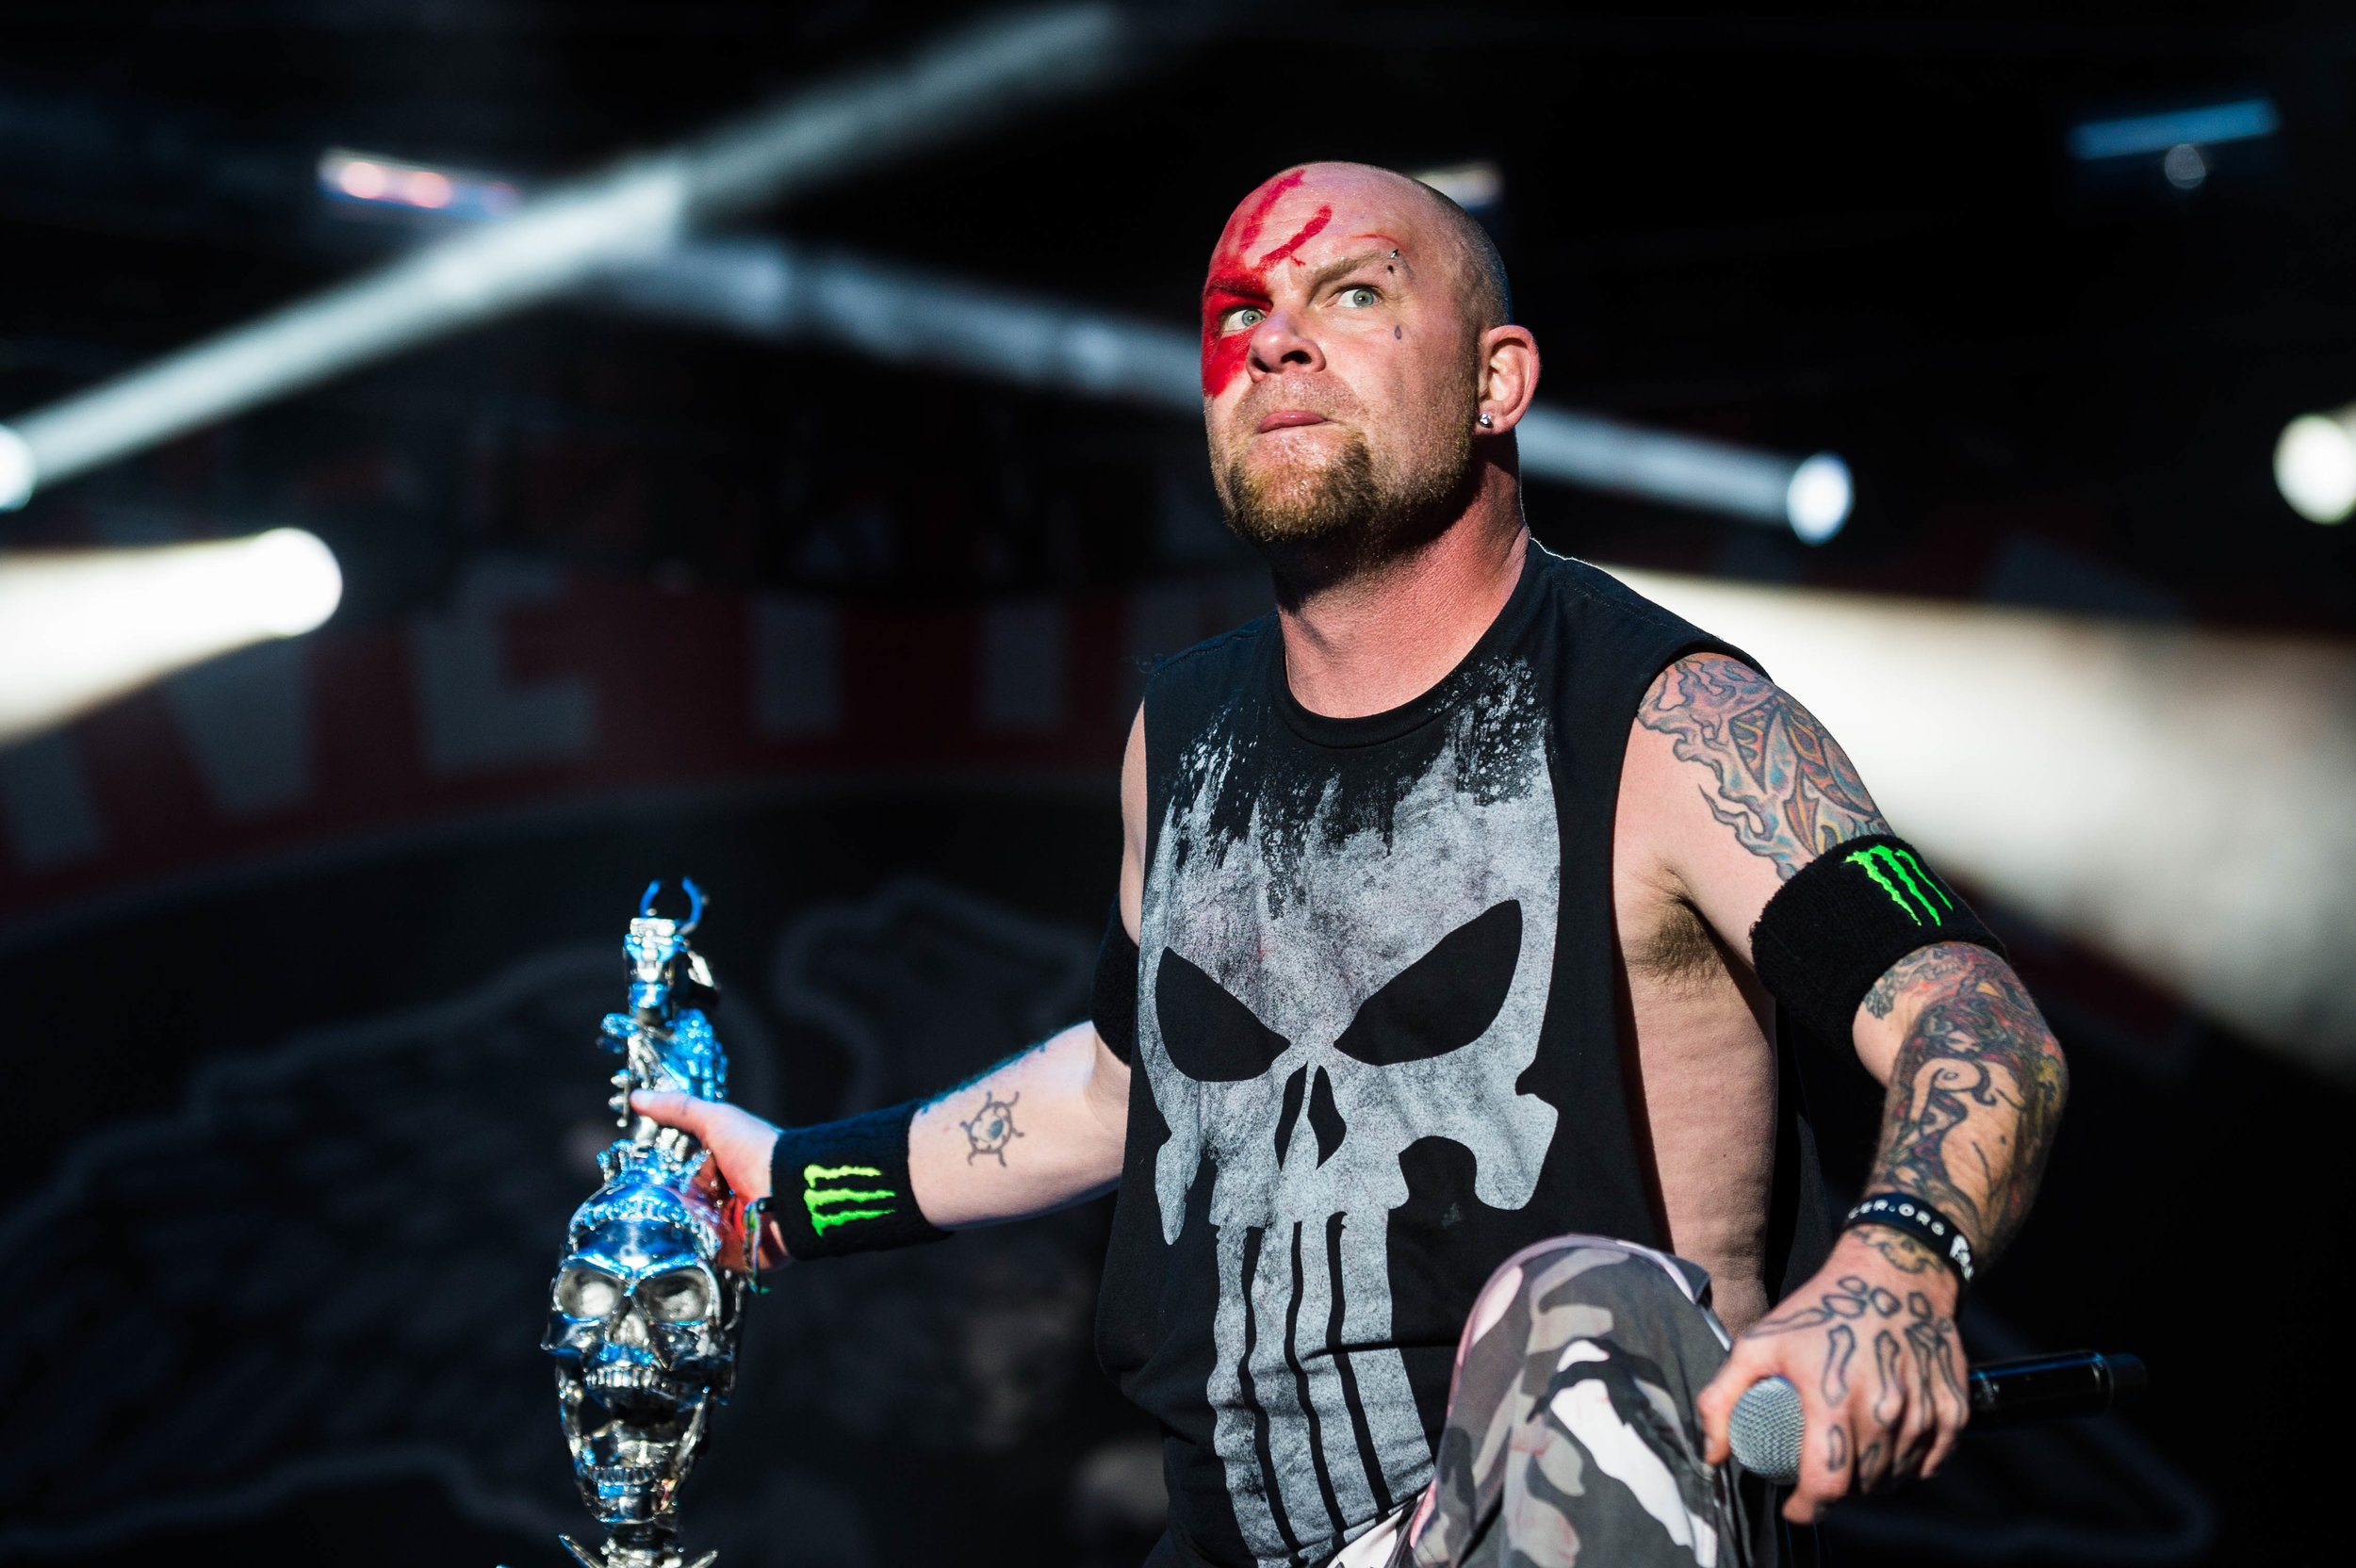 Five Finger Death Punch Sep 30 2017-39.jpg